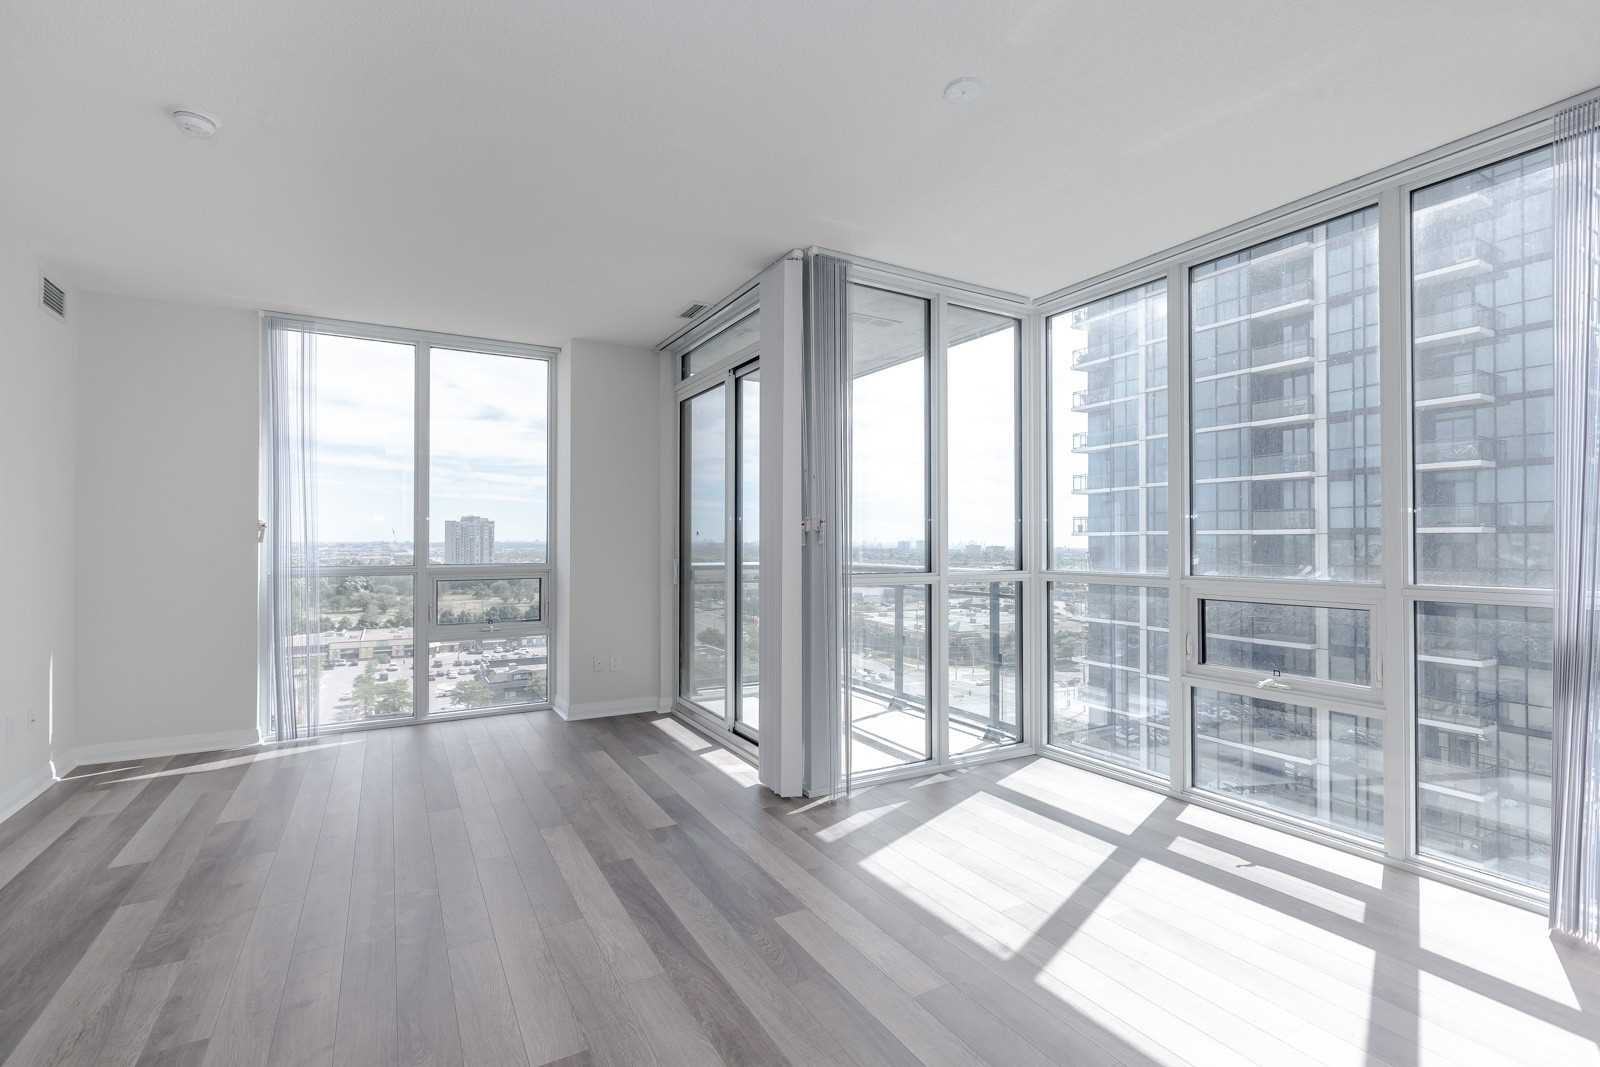 Photo 6: Photos: 1204 5025 Four Springs Avenue in Mississauga: Hurontario Condo for lease : MLS®# W4582092